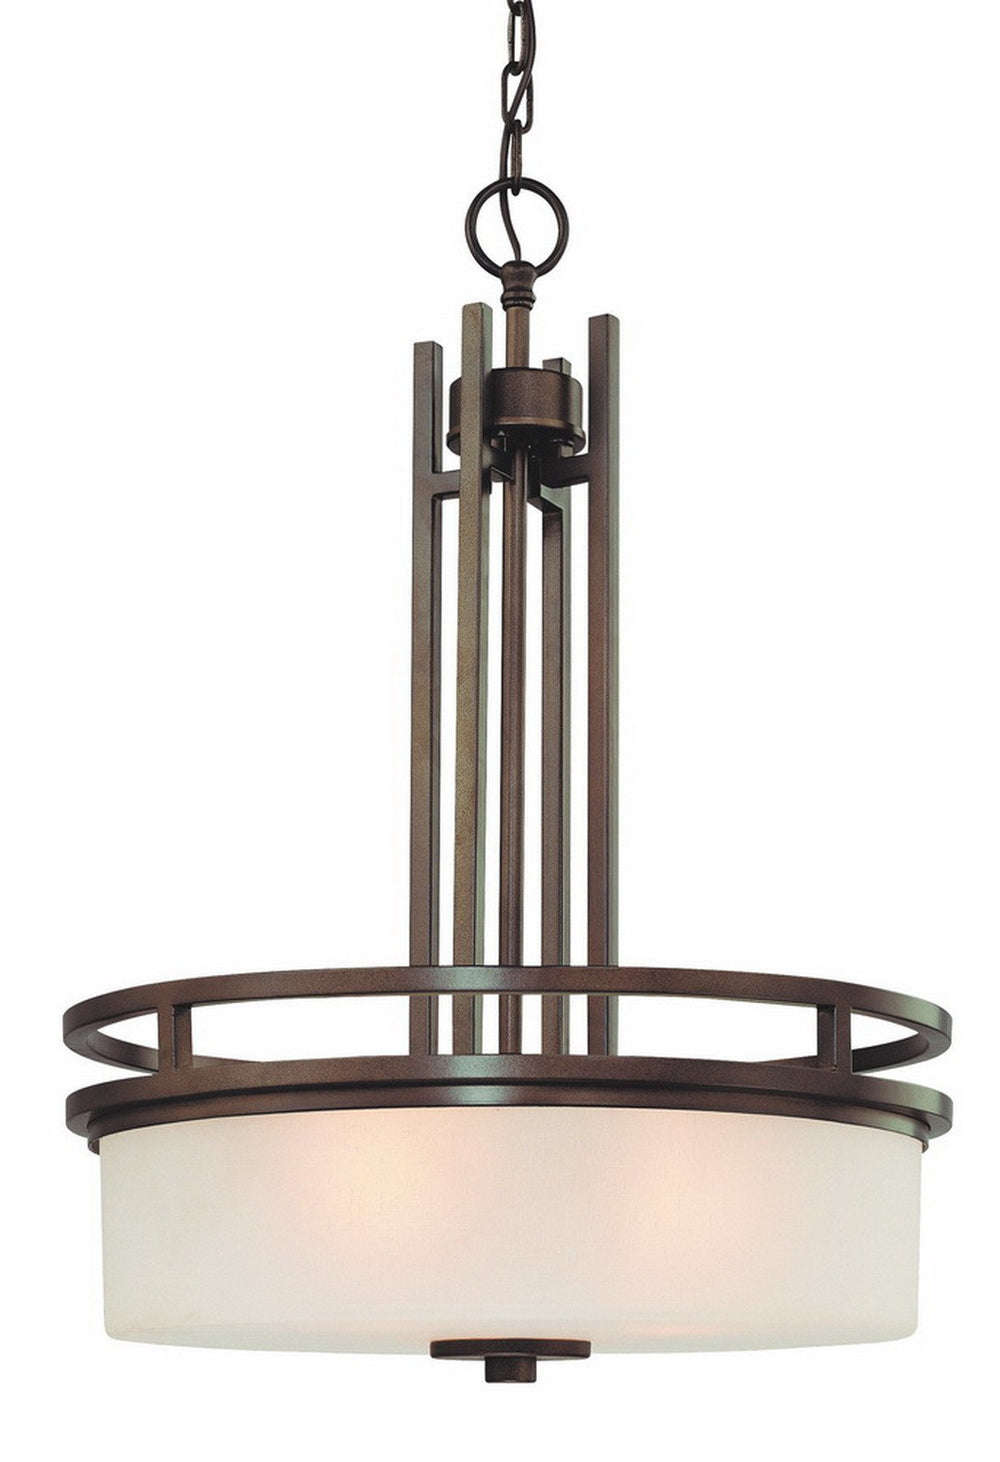 2884-62 Dolan Designs Multnomah 3 Light Pendant